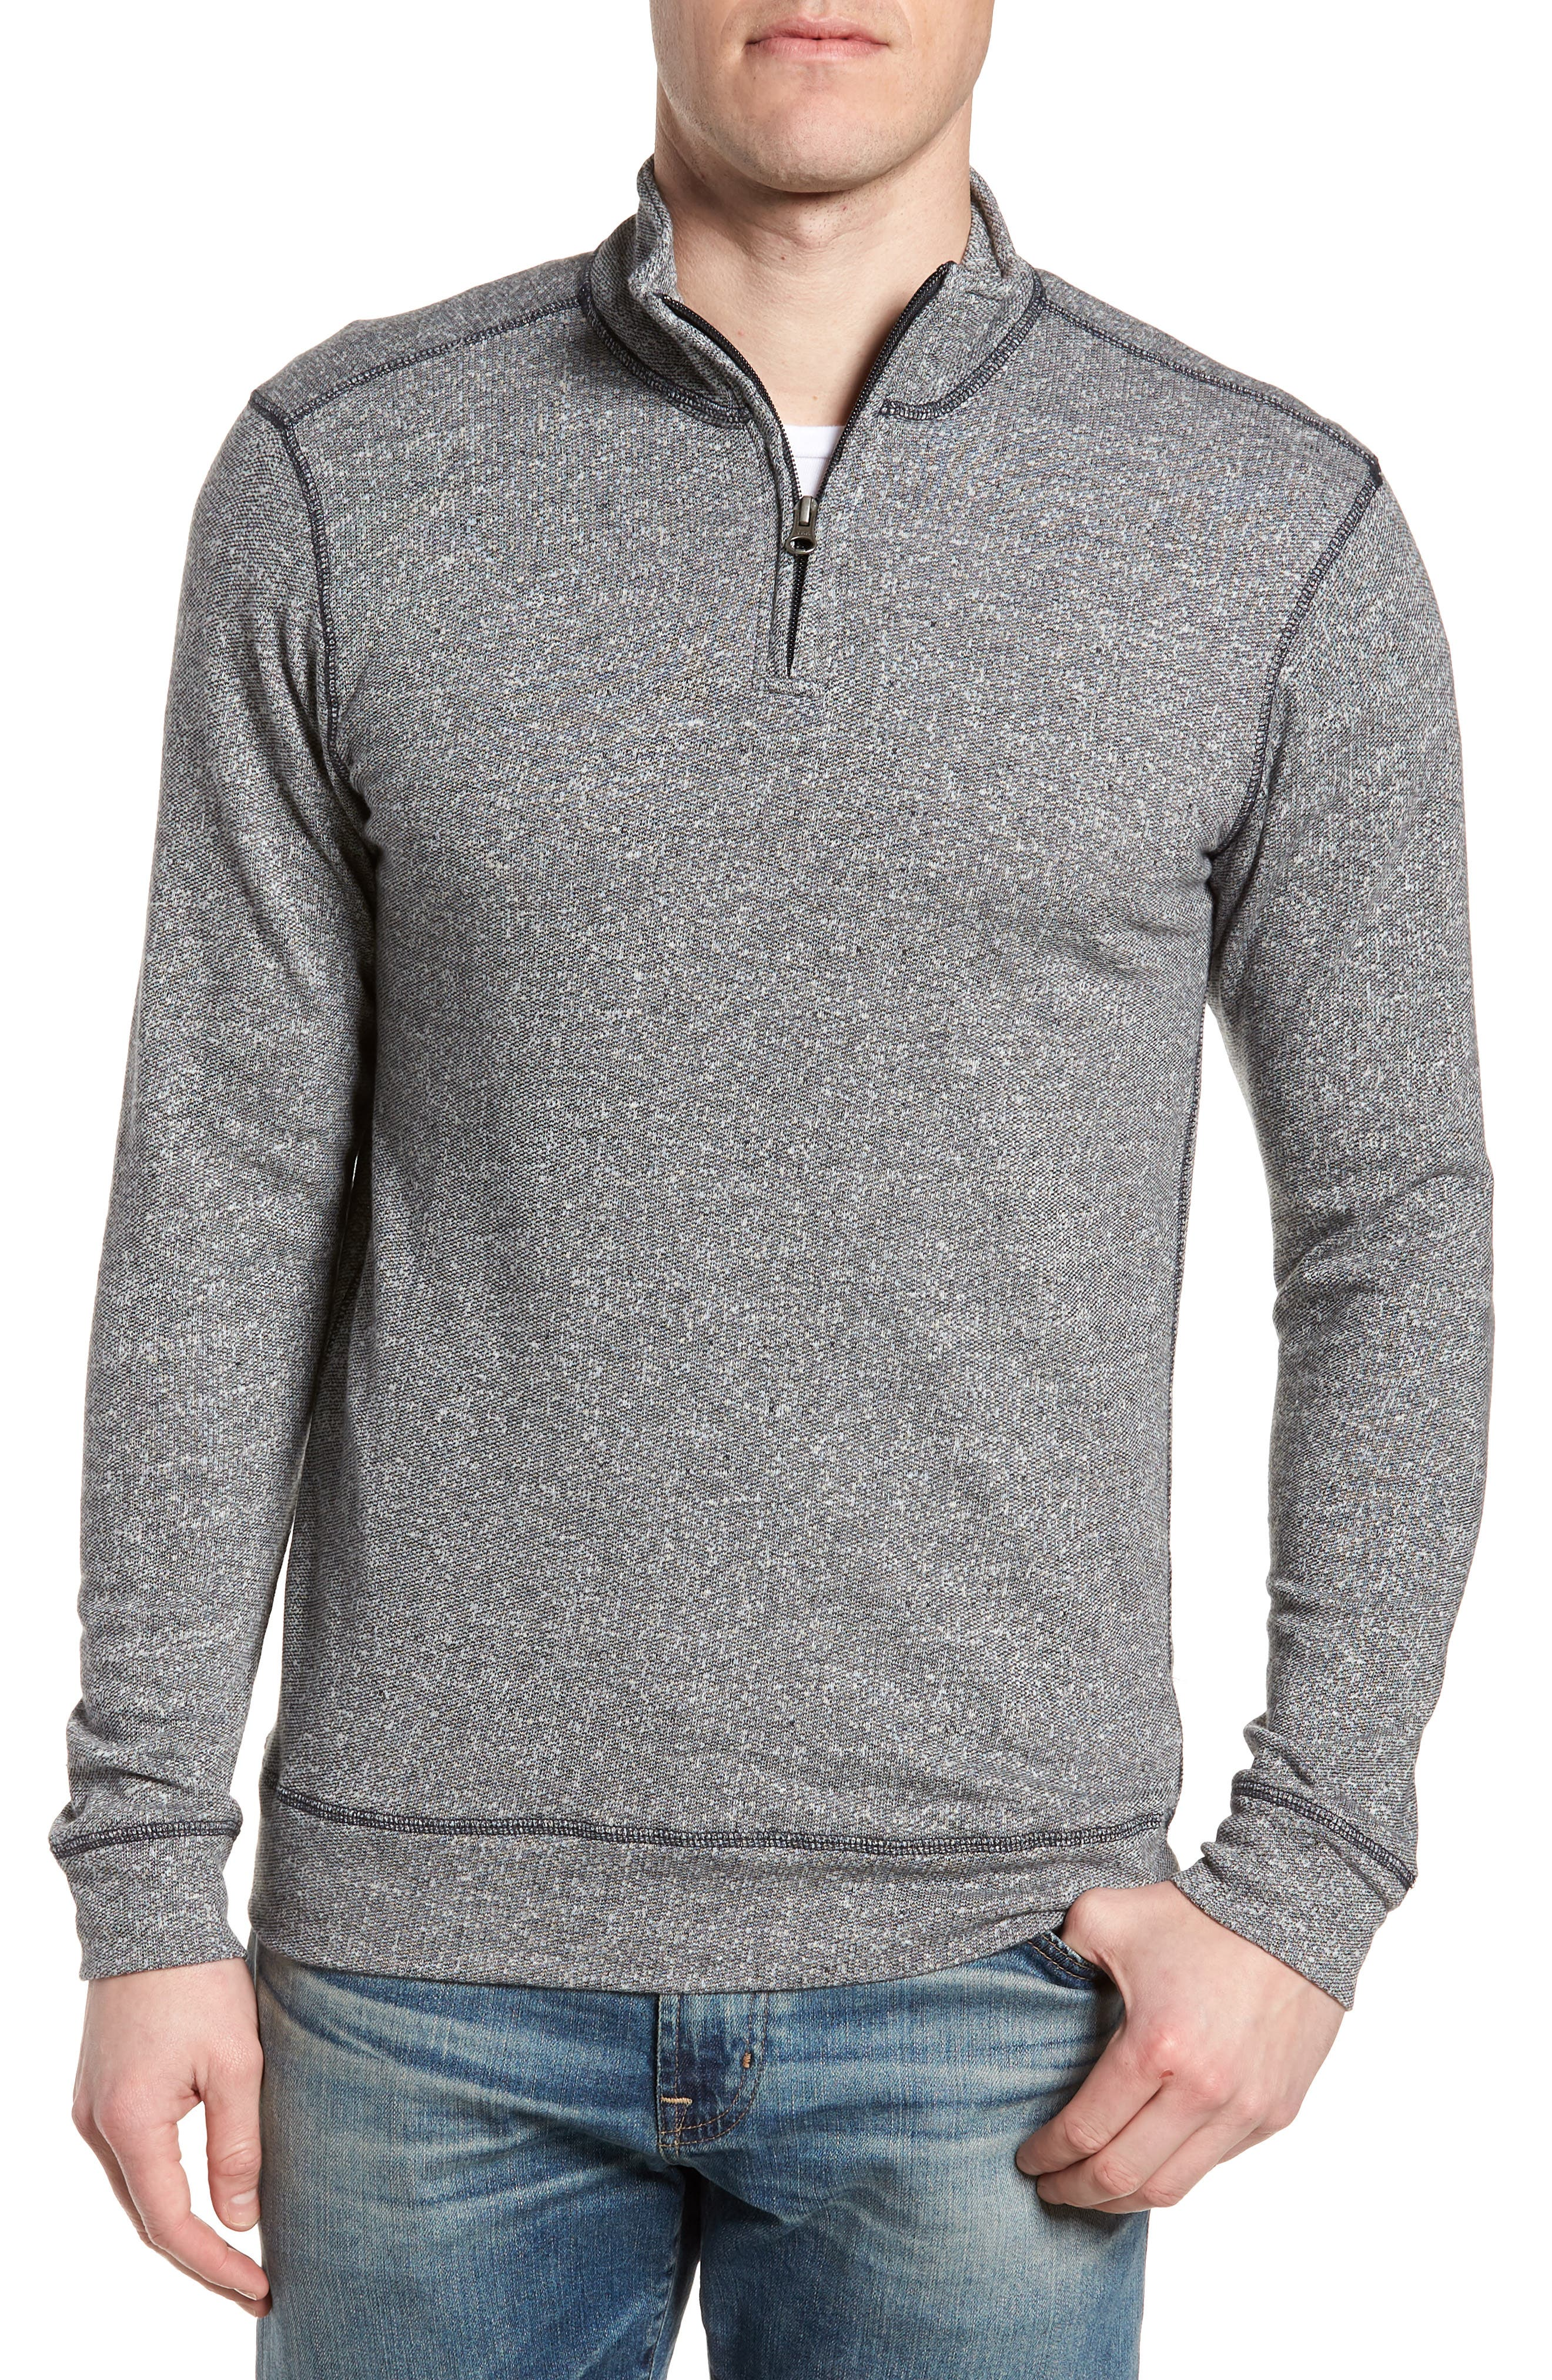 Regular Fit French Terry Pullover,                             Main thumbnail 1, color,                             010